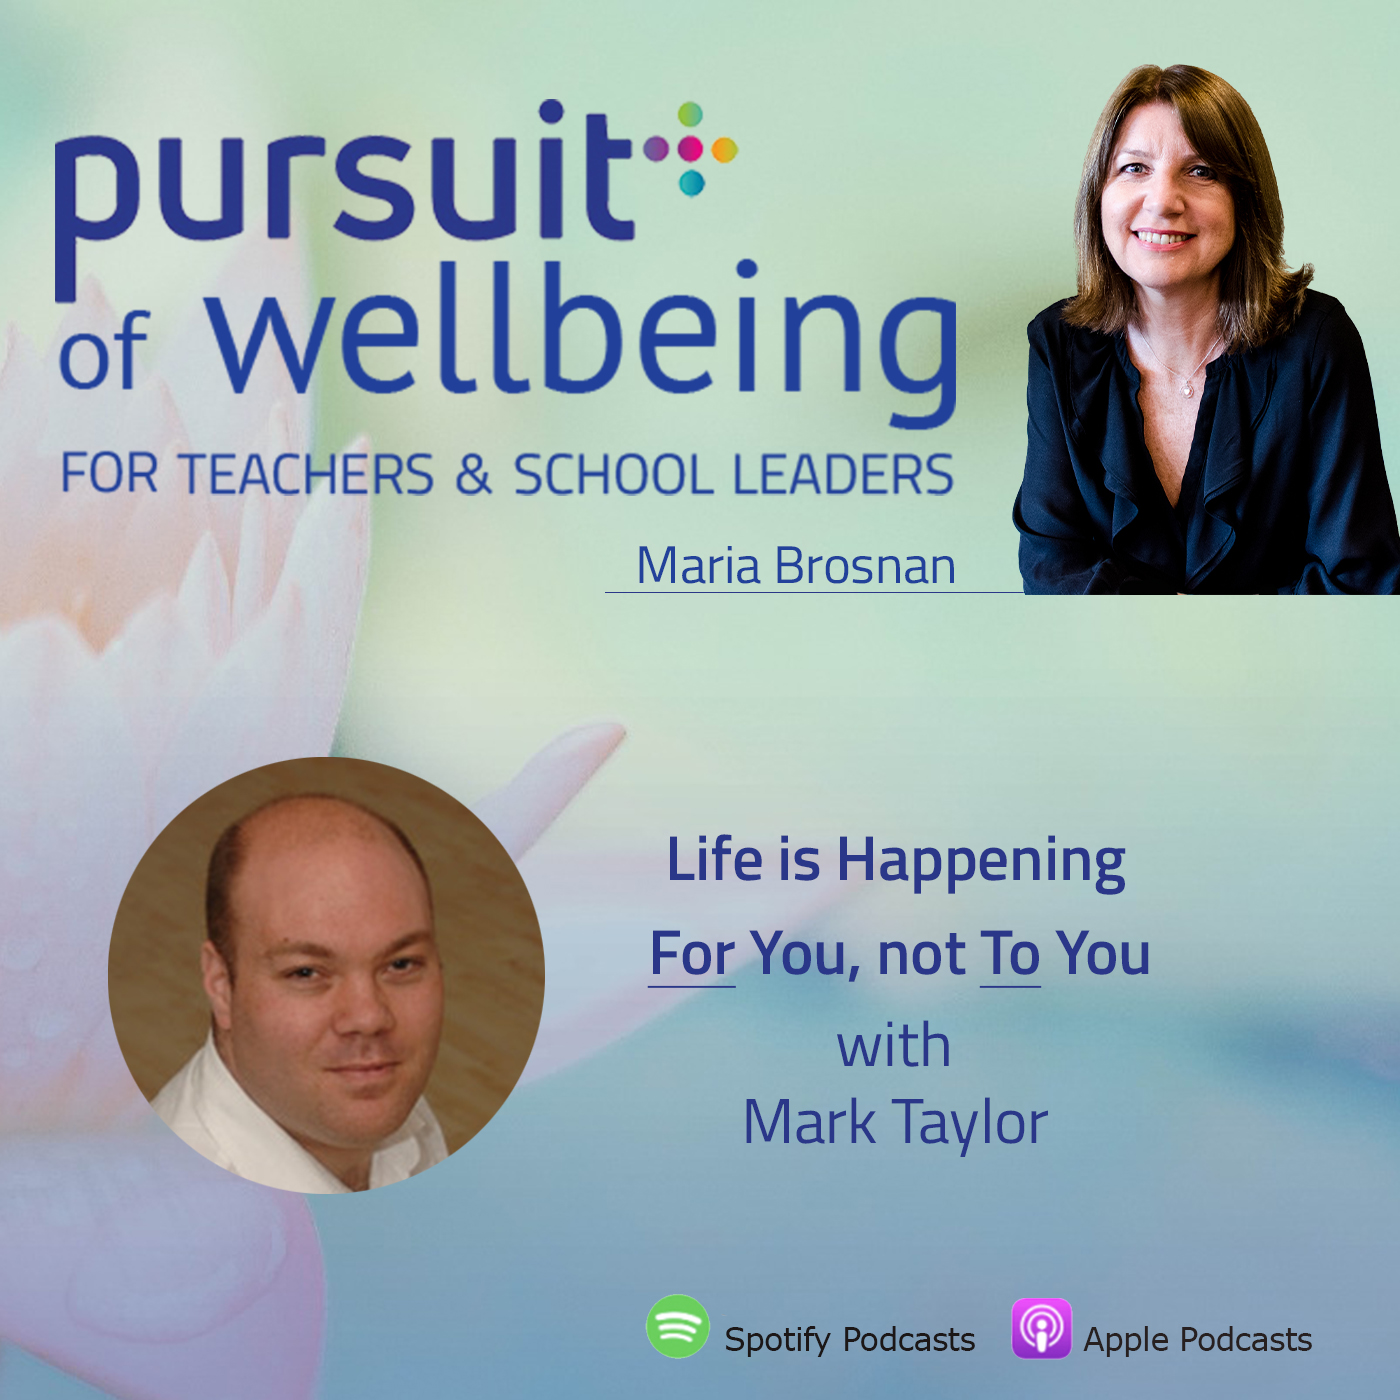 Life is Happening FOR You not TO You with Mark Taylor